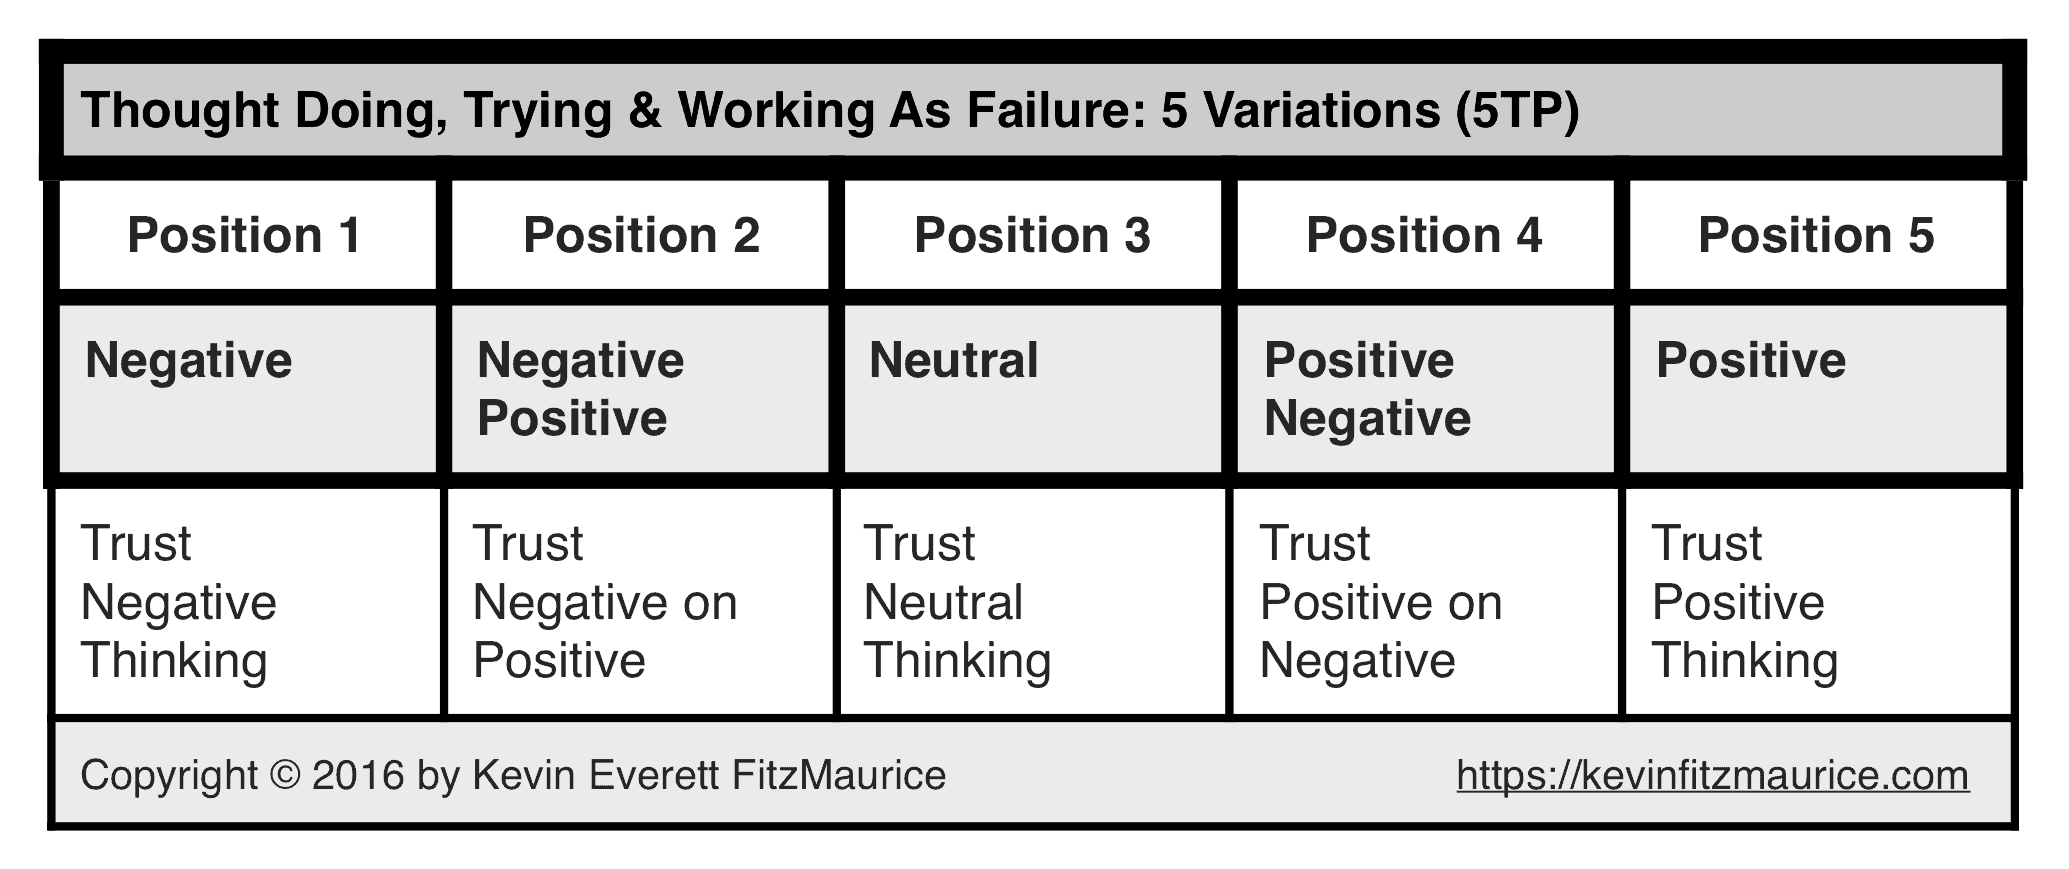 5TP on Thinking Failures